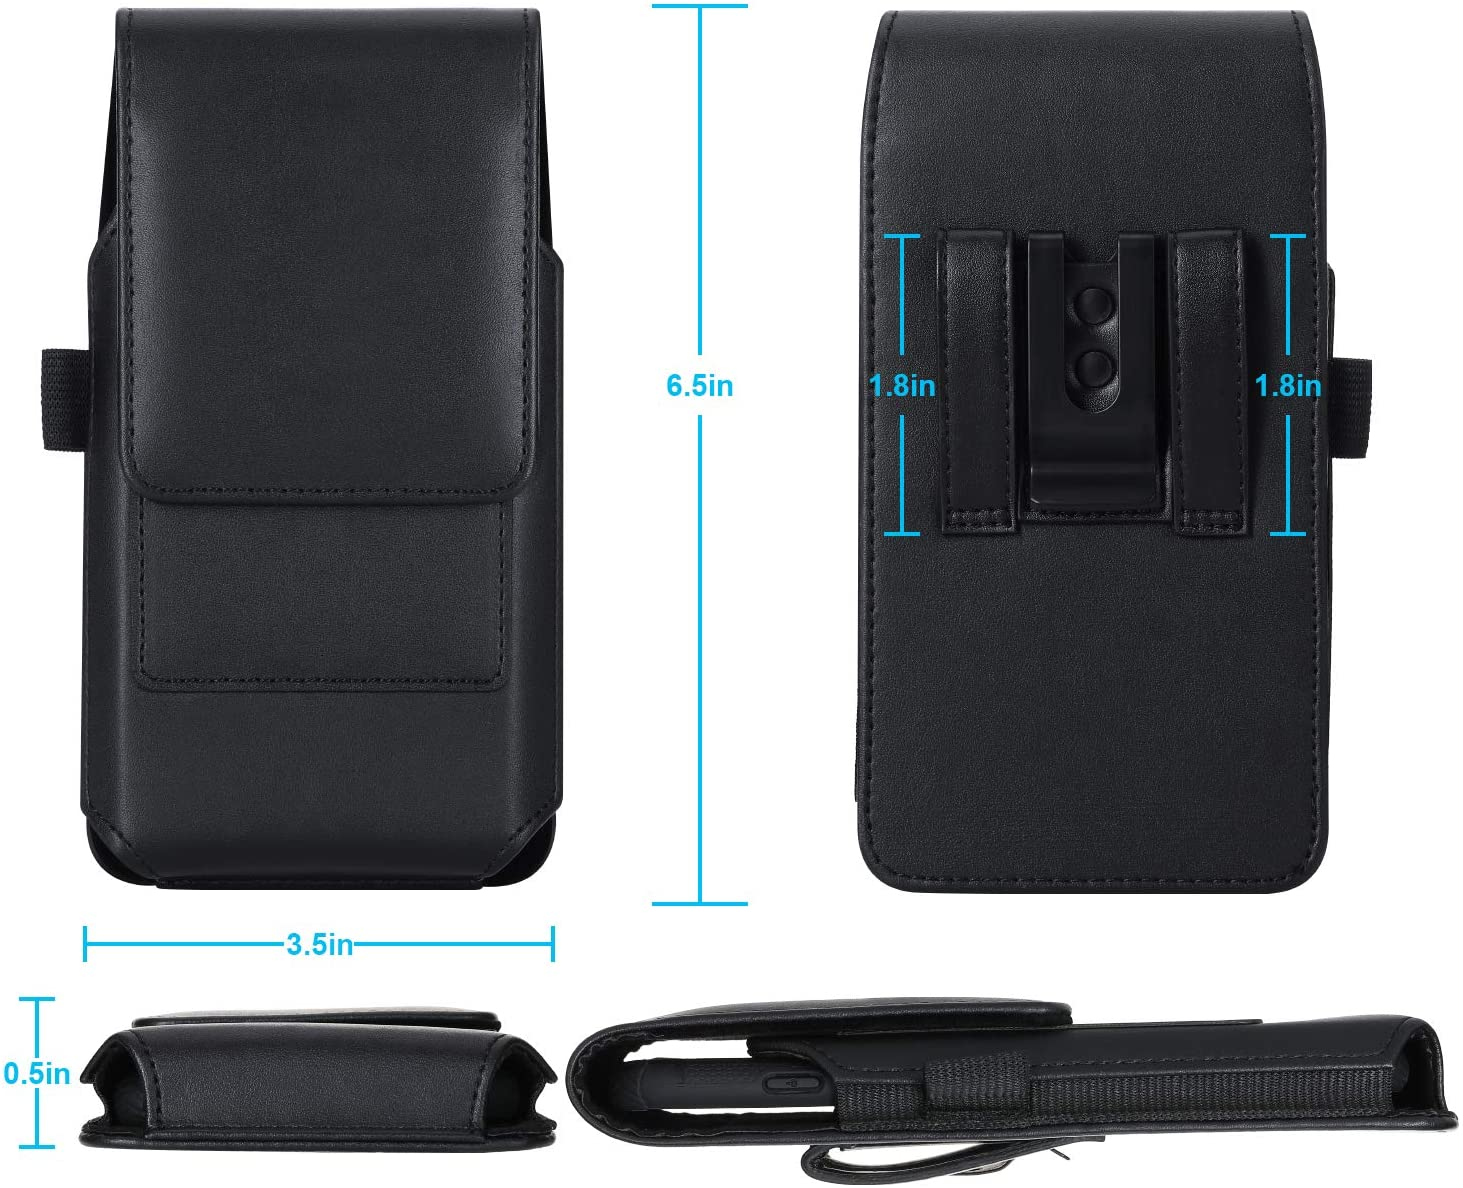 Mopaclle iPhone 12 Pro Max Holster Case Black iPhone Xs Max Belt Clip Case Fits w//Thin Case on Premium Leather Cell Phone Belt Pouch Holder for iPhone 11 Pro Max// 7 Plus// 8 Plus// 6s Plus